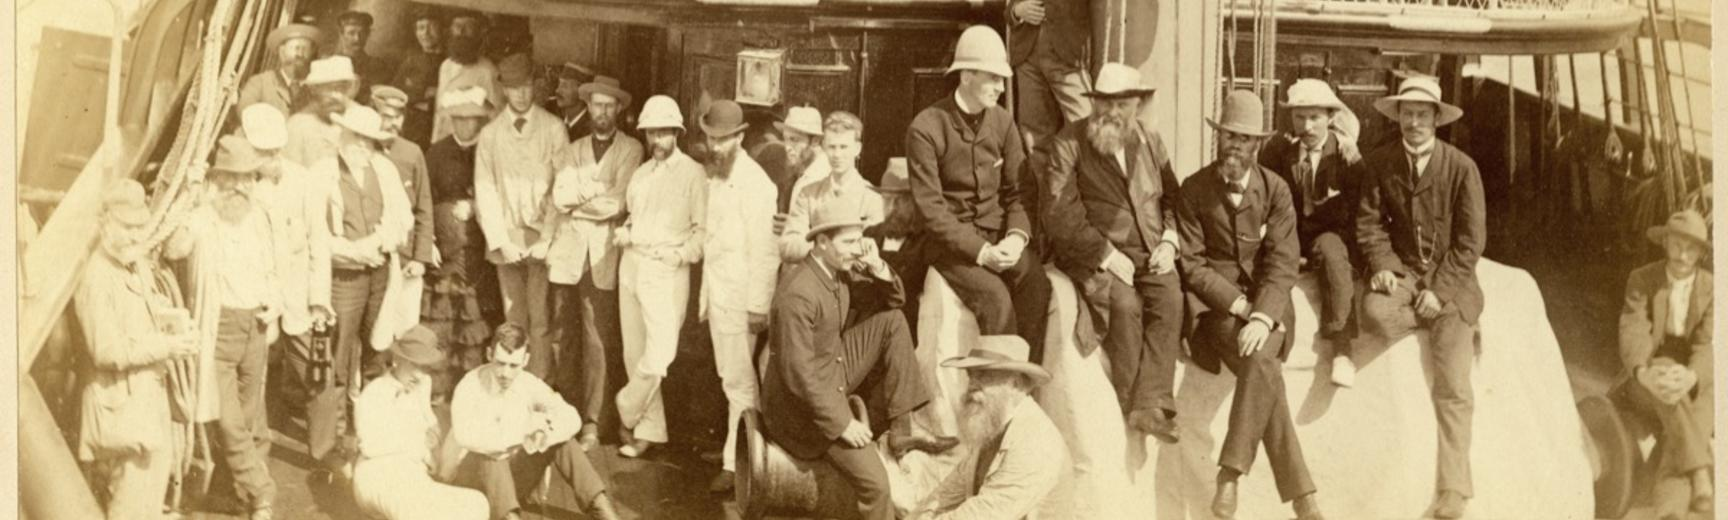 Passengers on board the deck of the S.S. Wairarapa, the Union Line steamship which in June and July 1884 made two voyages to the South Seas. Photograph by Alfred Burton for the Burton Brothers studio (Dunedin). June 1884. (Copyright Pitt Rivers Museum, Un